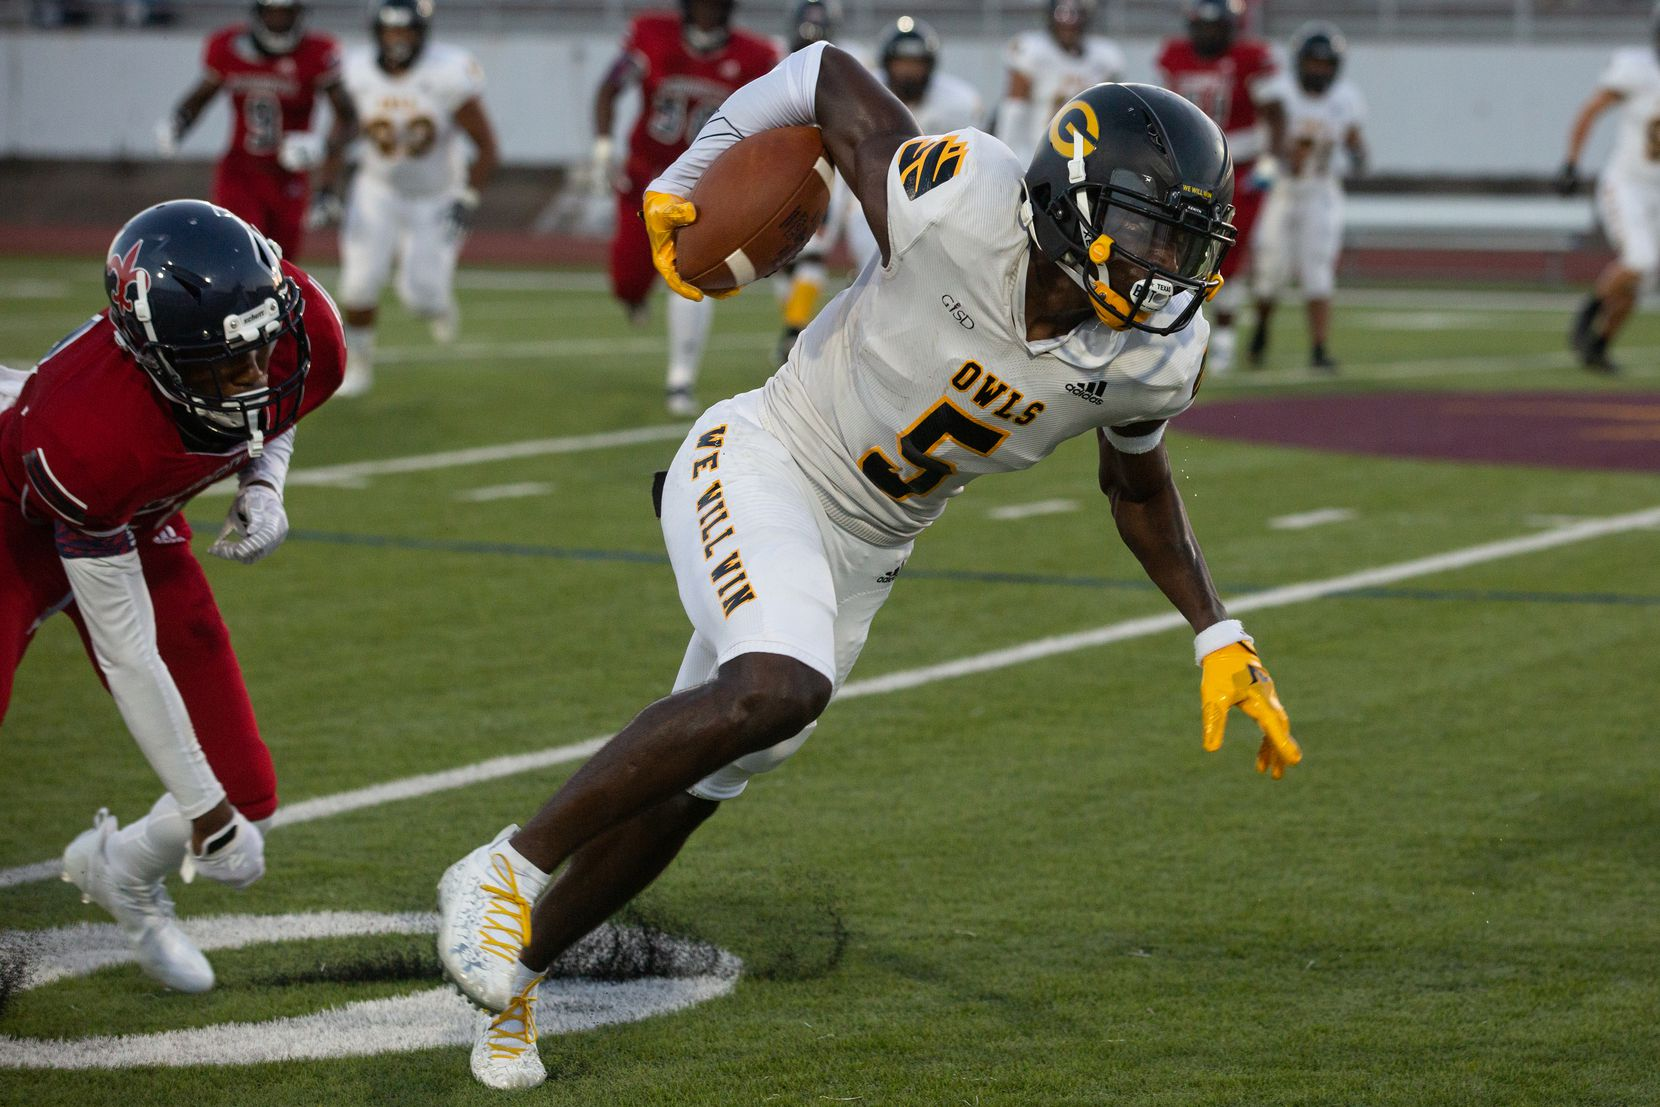 Garland High School wide receiver JordanHudson (5) powers through the defense during their season-opening game against Justin F. Kimball High School at Sprague Stadium in Dallas, TX on August 27, 2021.   (Shelby Tauber/Special Contributor)